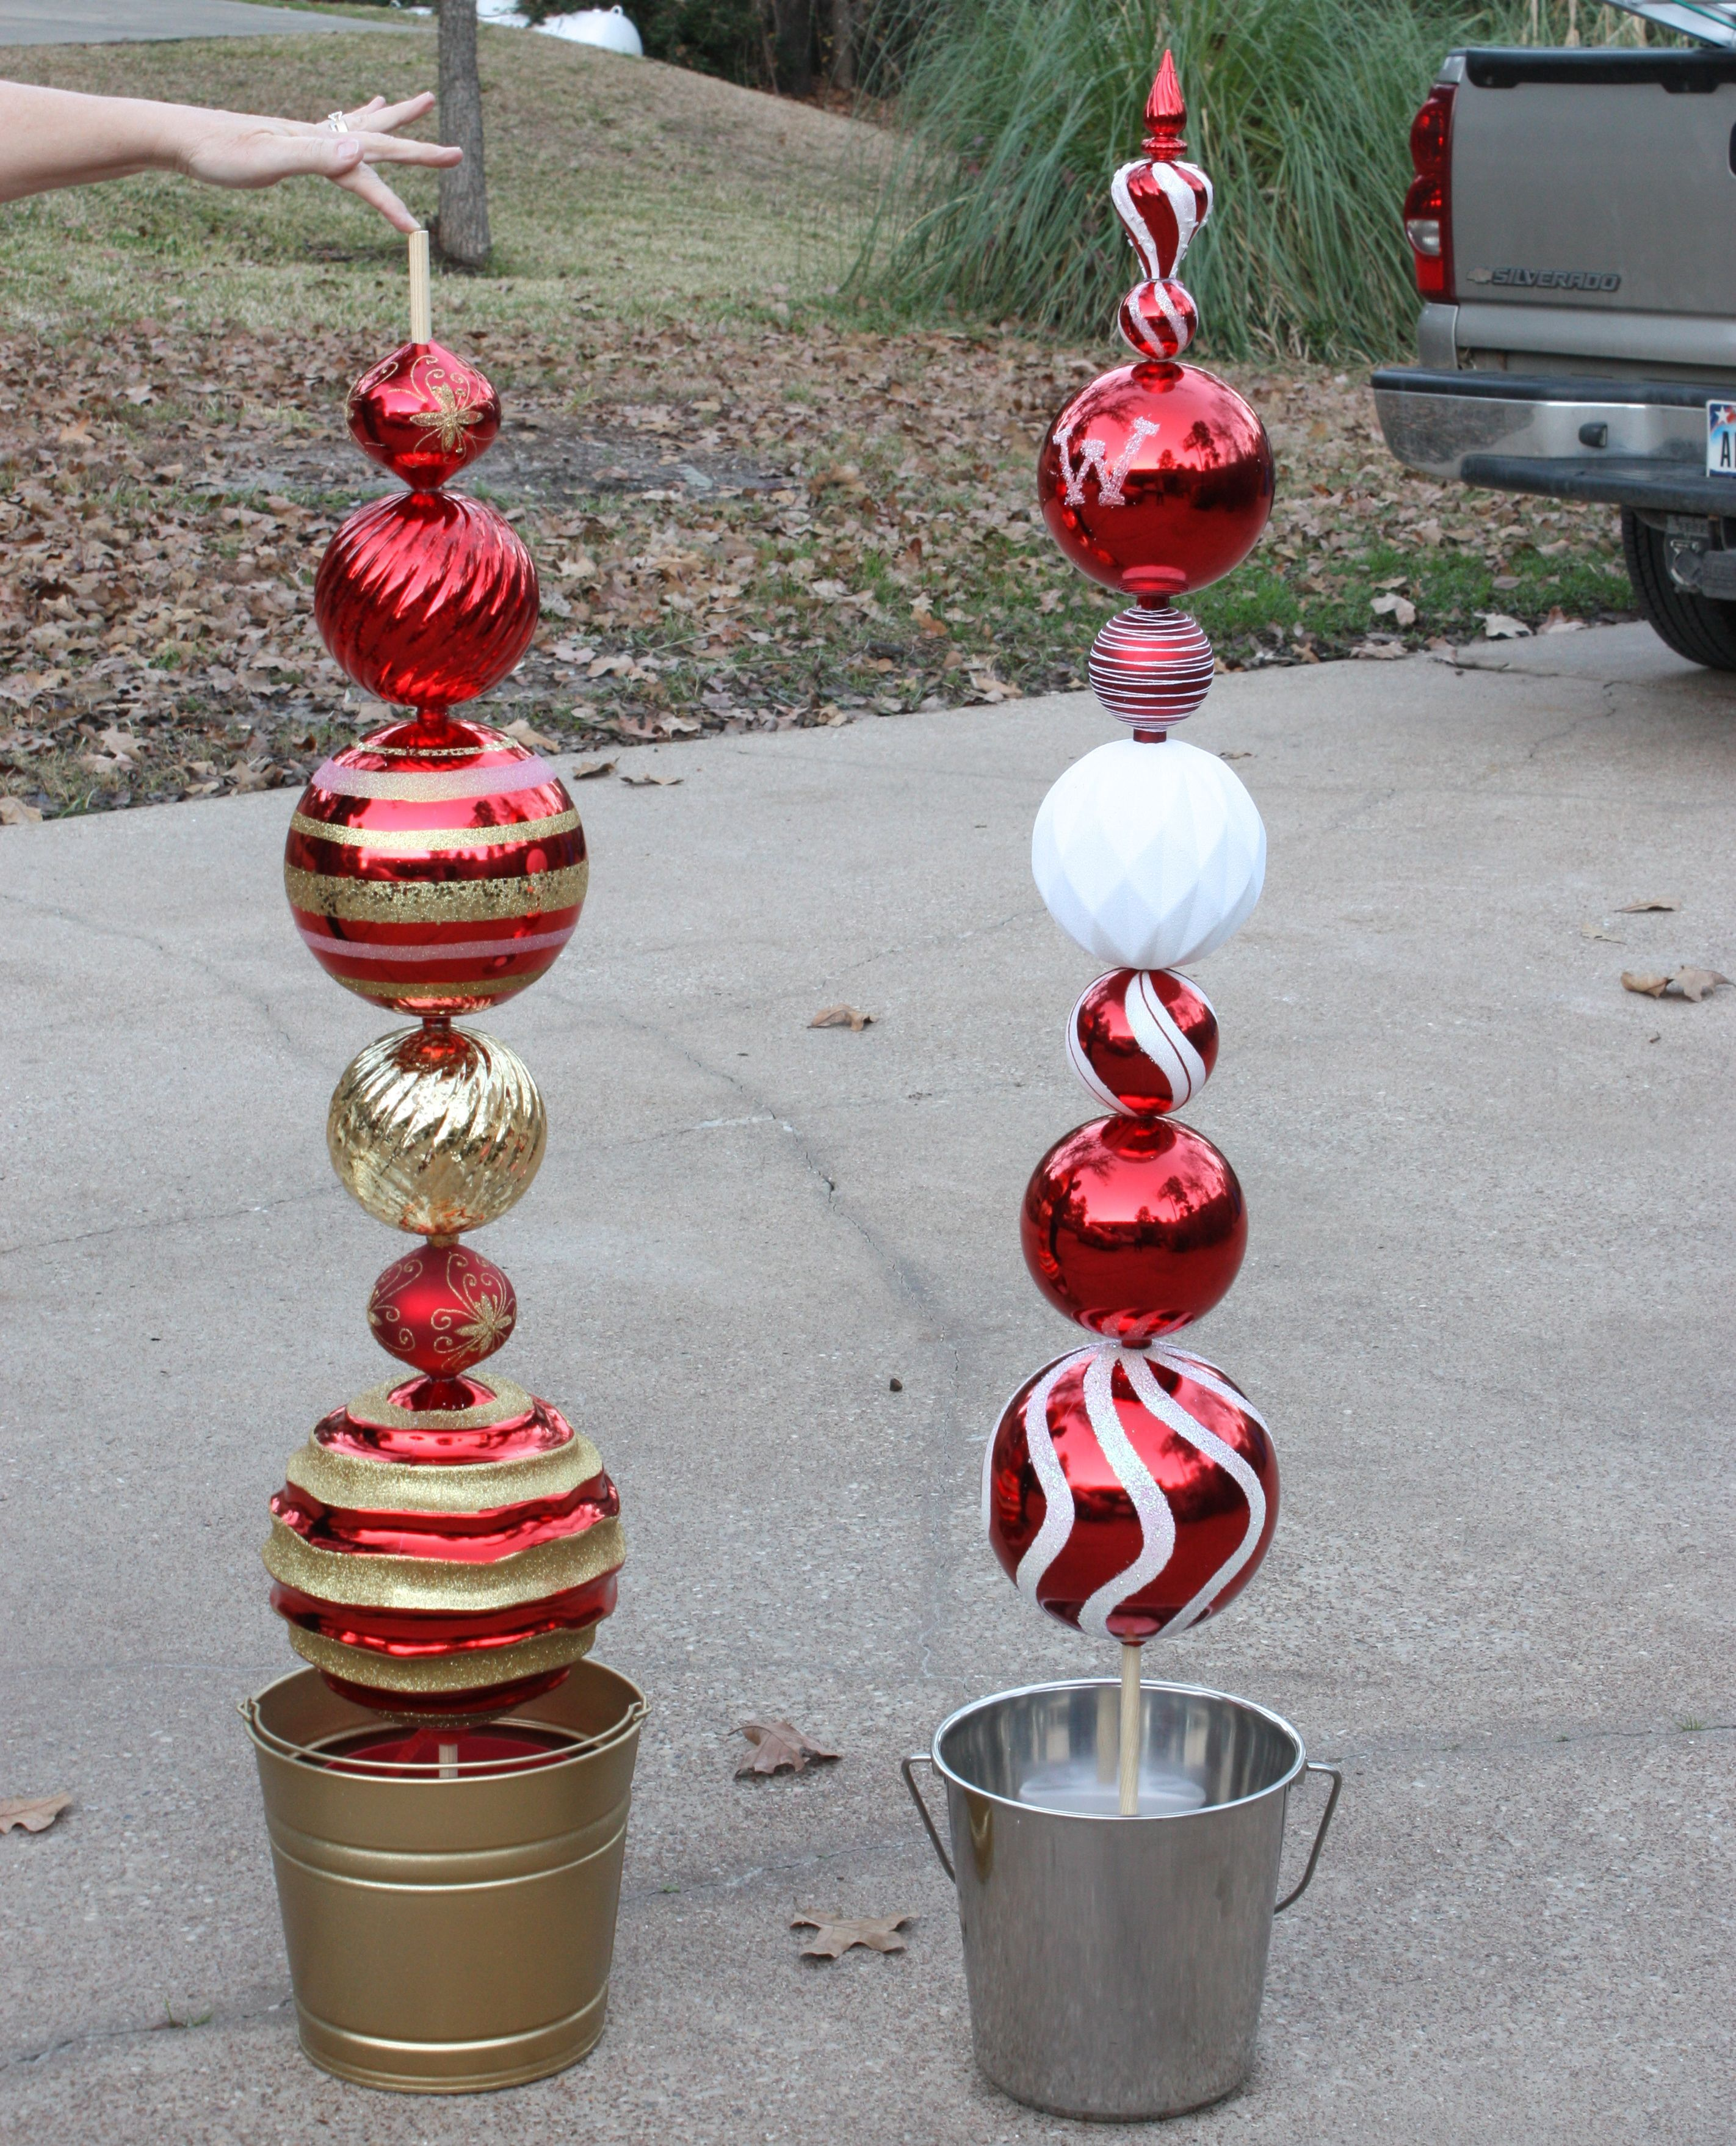 Homemade Christmas Yard Decorations: DIY Tall Ornament Topiary...